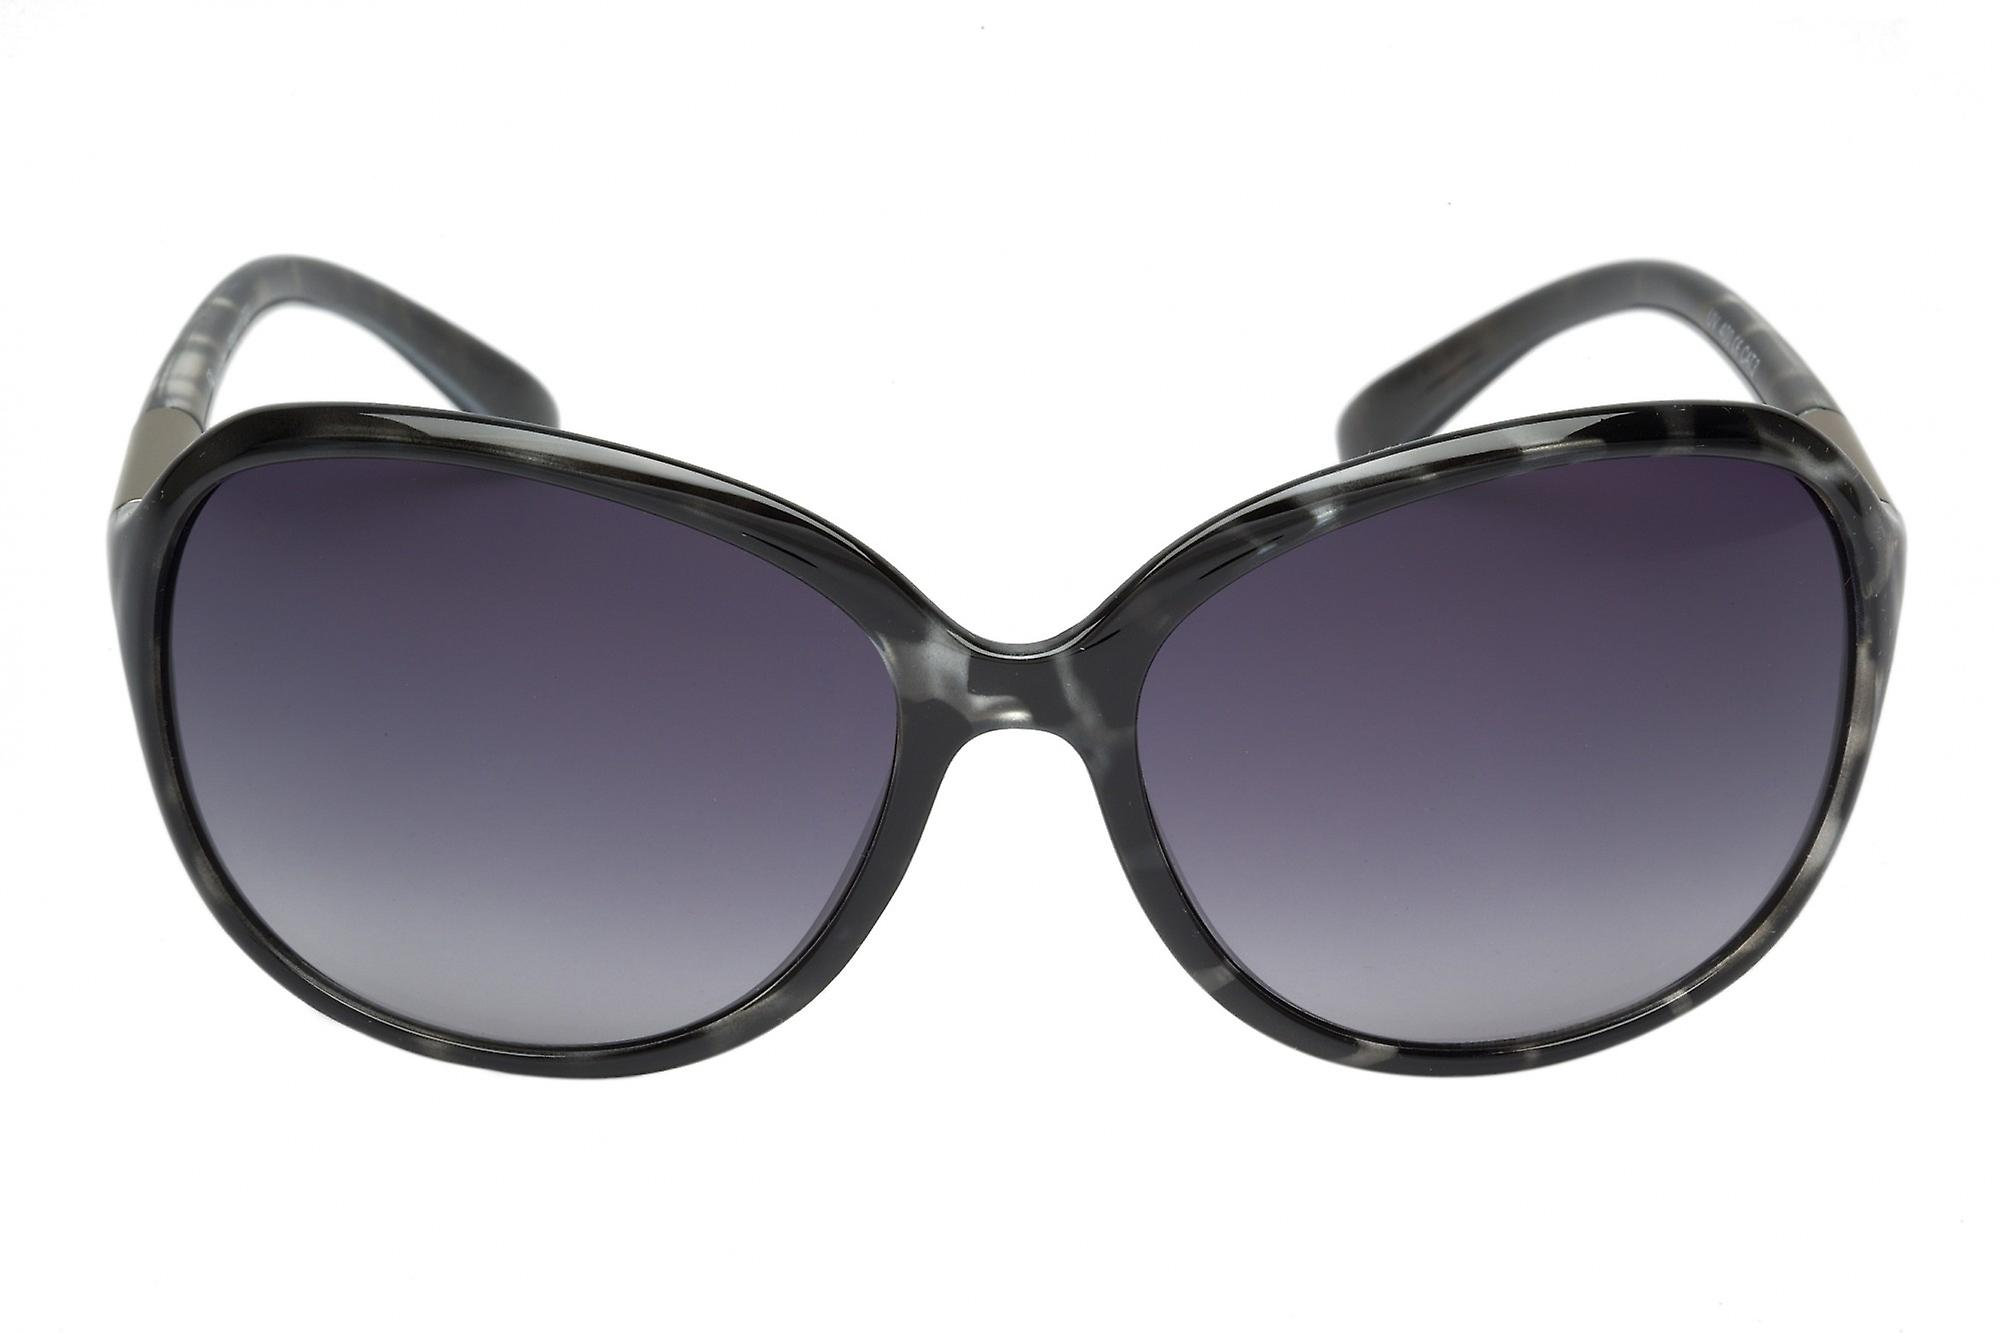 Burgmeister Ladies sunglasses Nizza, SBM111-331